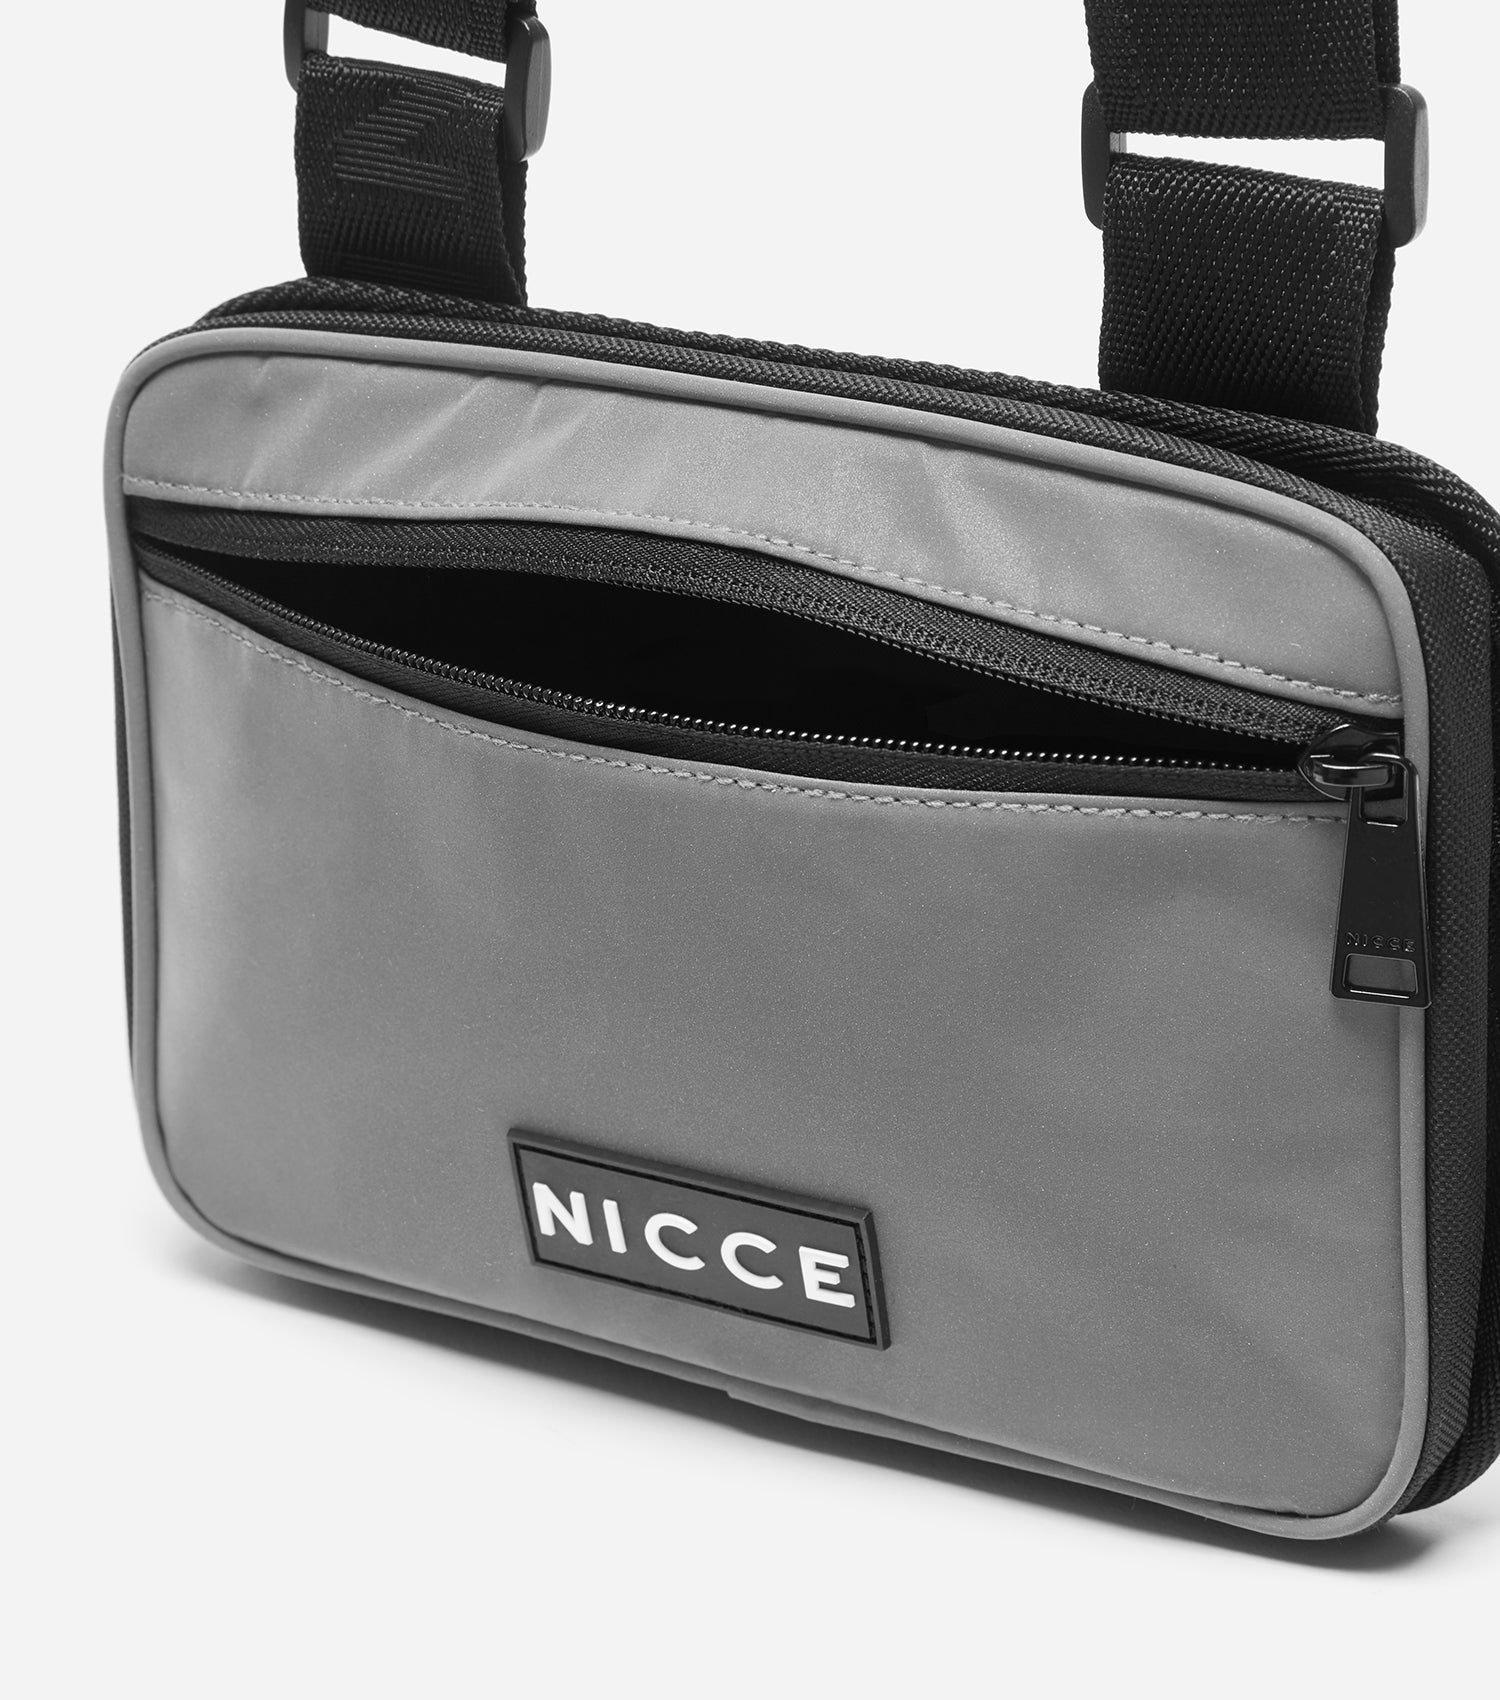 NICCE Sprint Bum Bag | Reflective, Bags